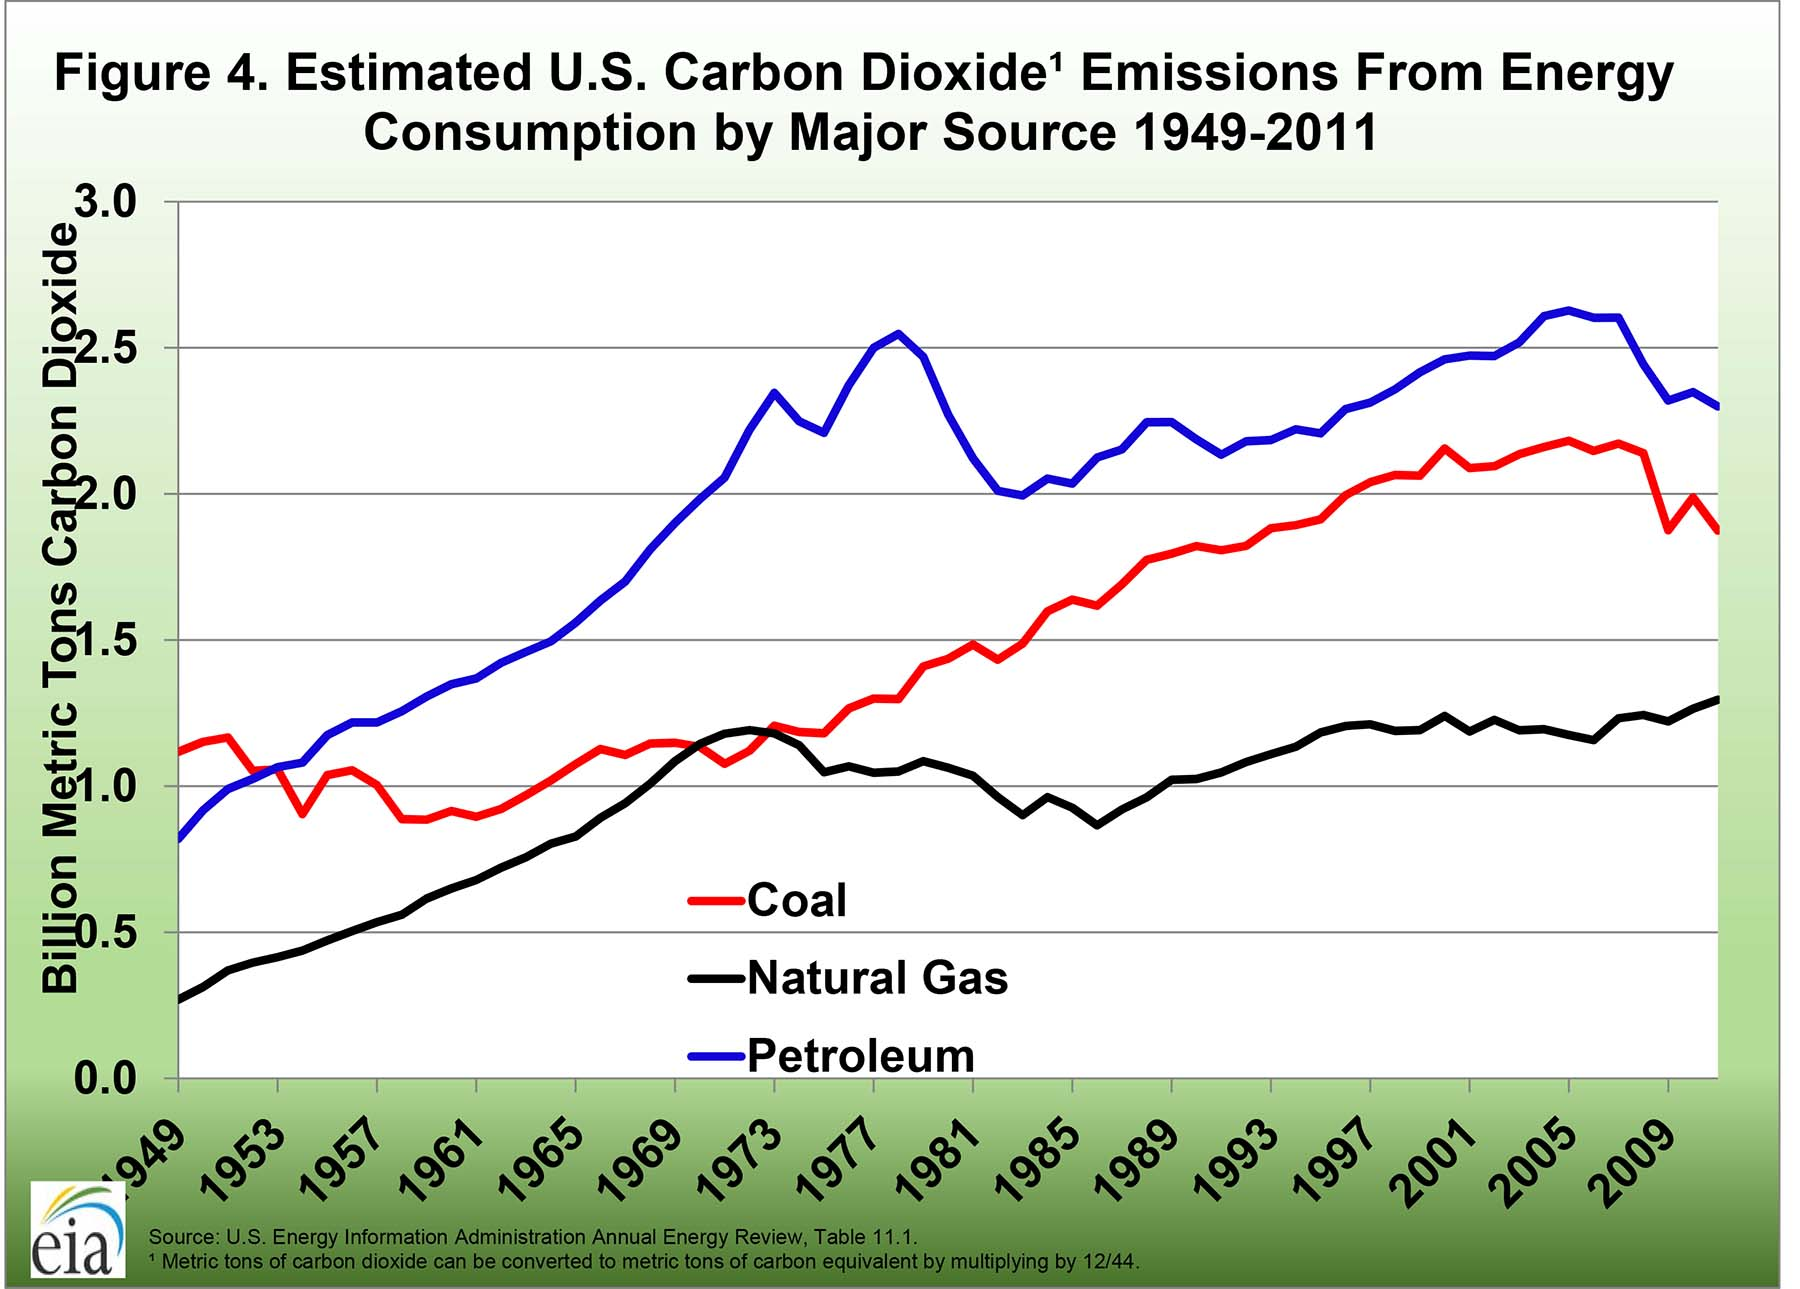 Estimated U.S. carbon dioxide emissions from energy consumption by major source